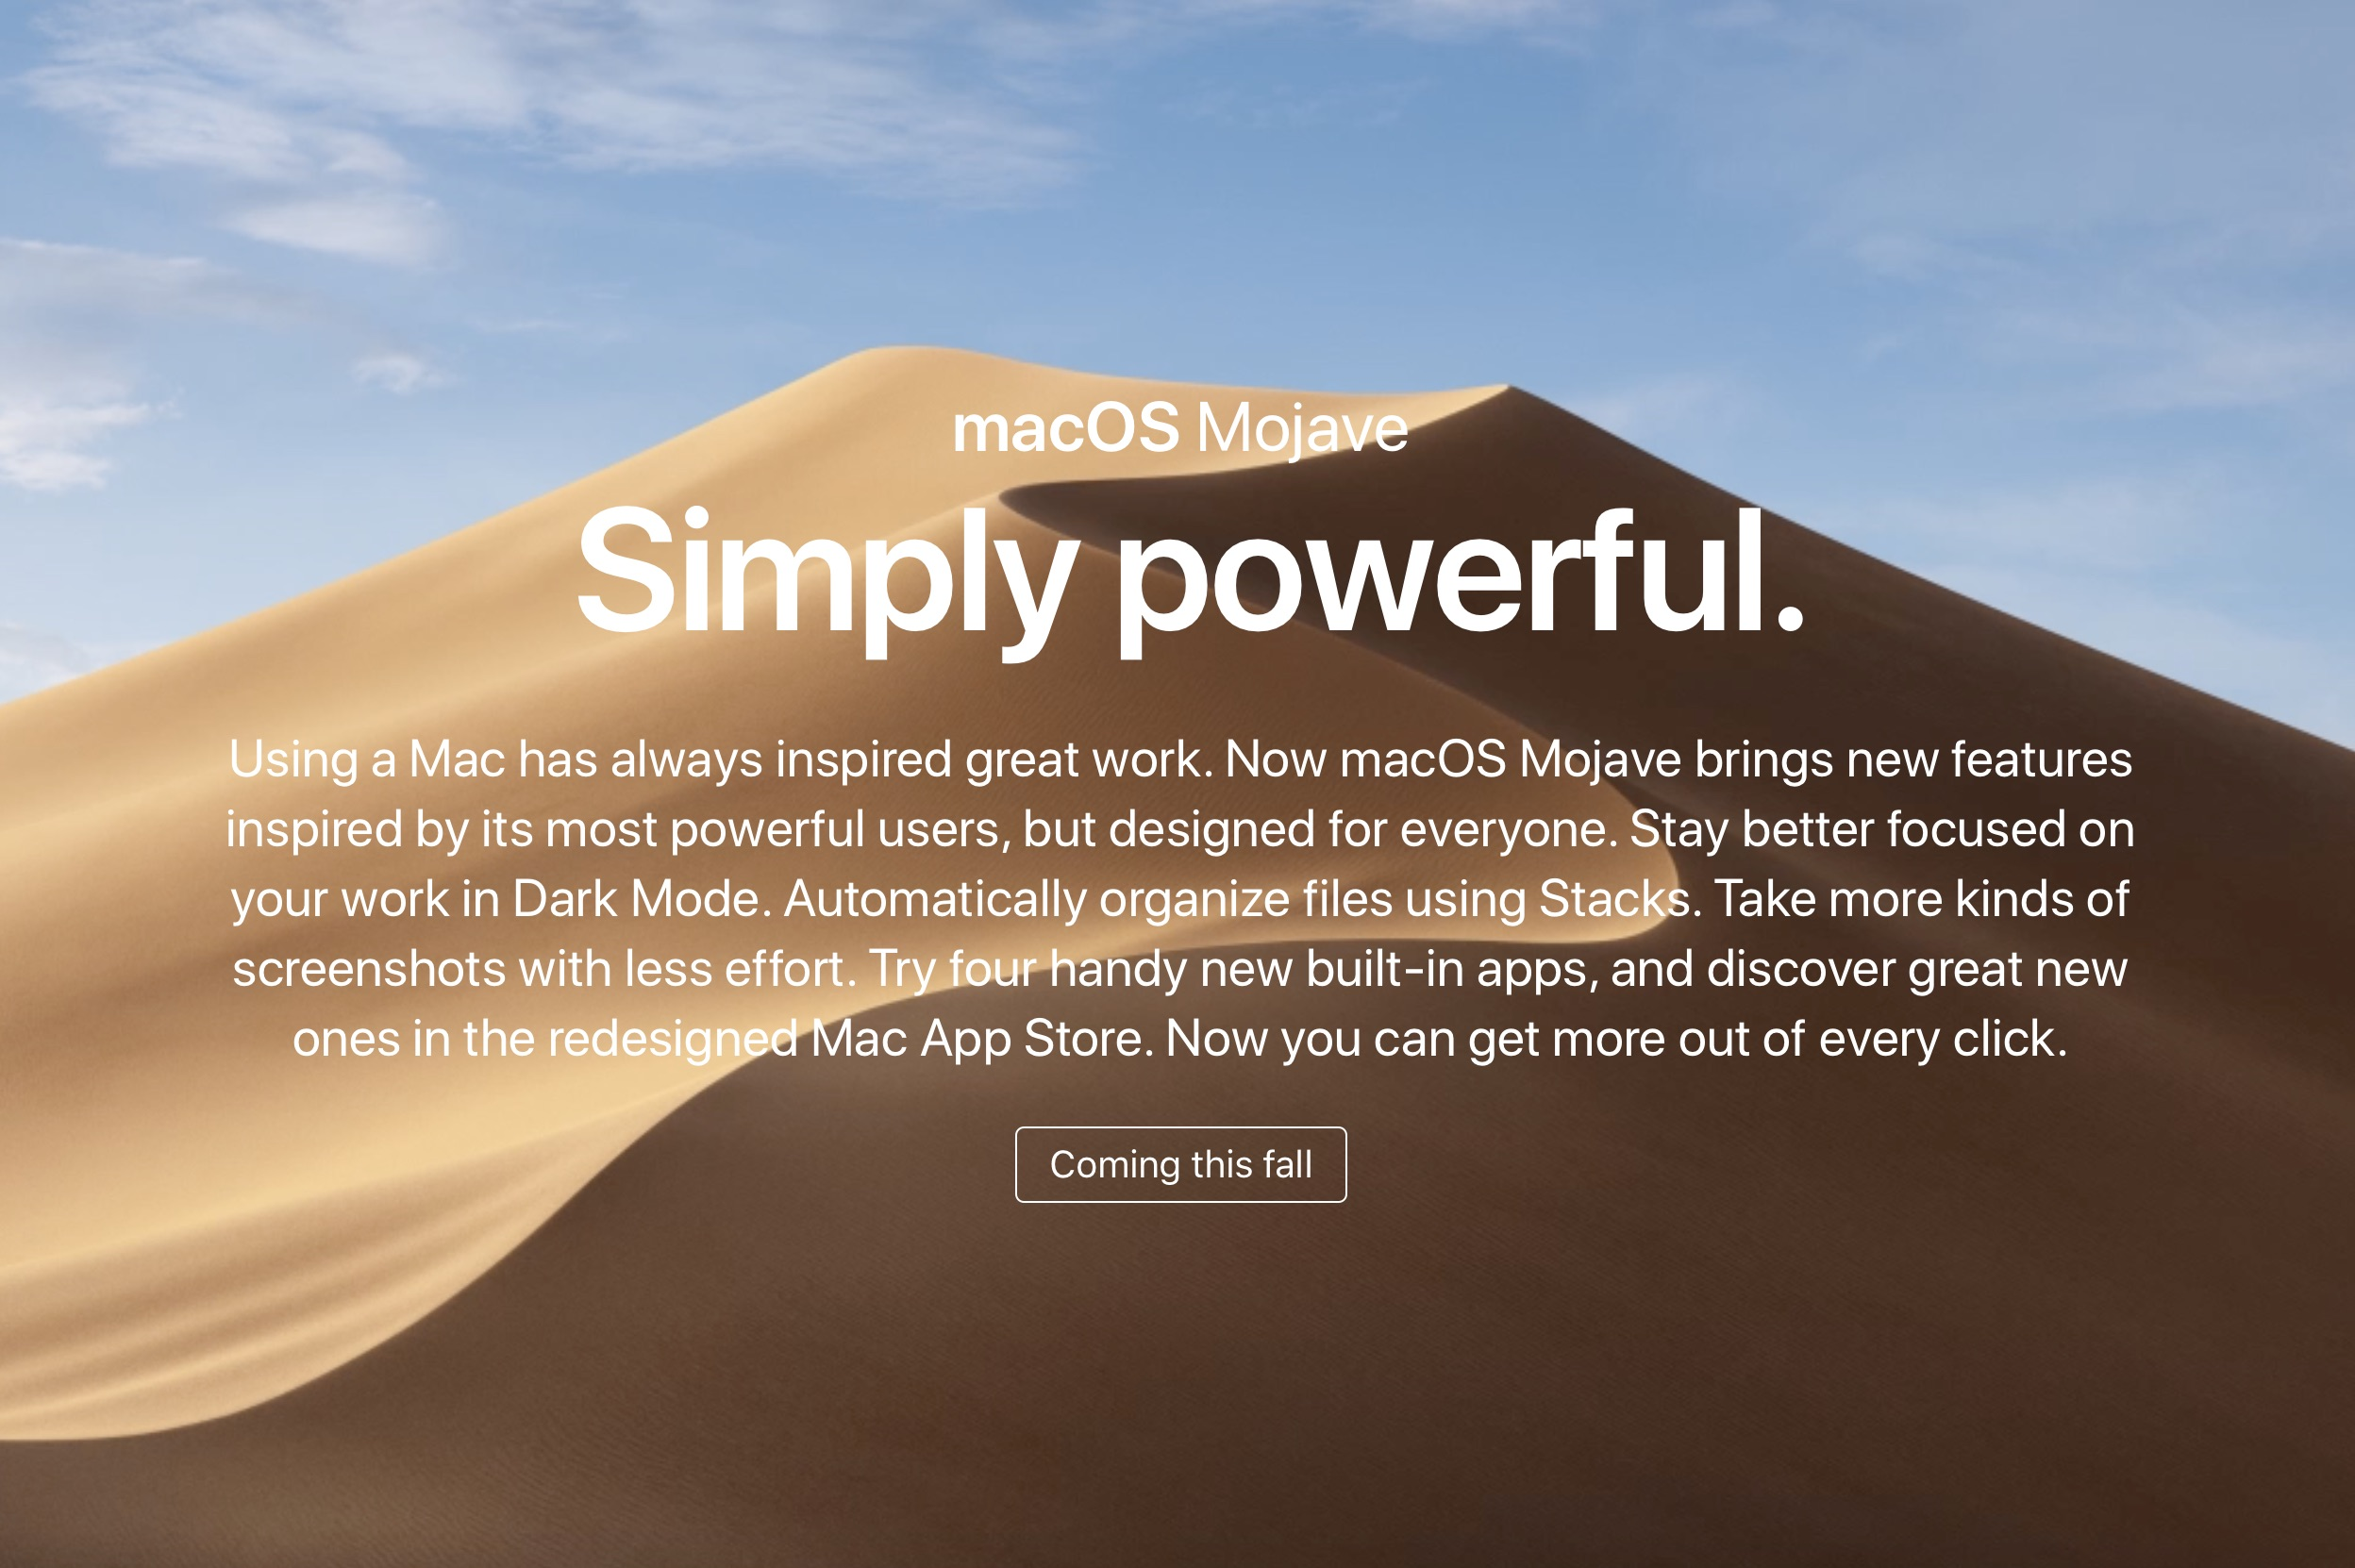 Here's How to Install macOS Mojave 10 14 Public Beta on Your Mac